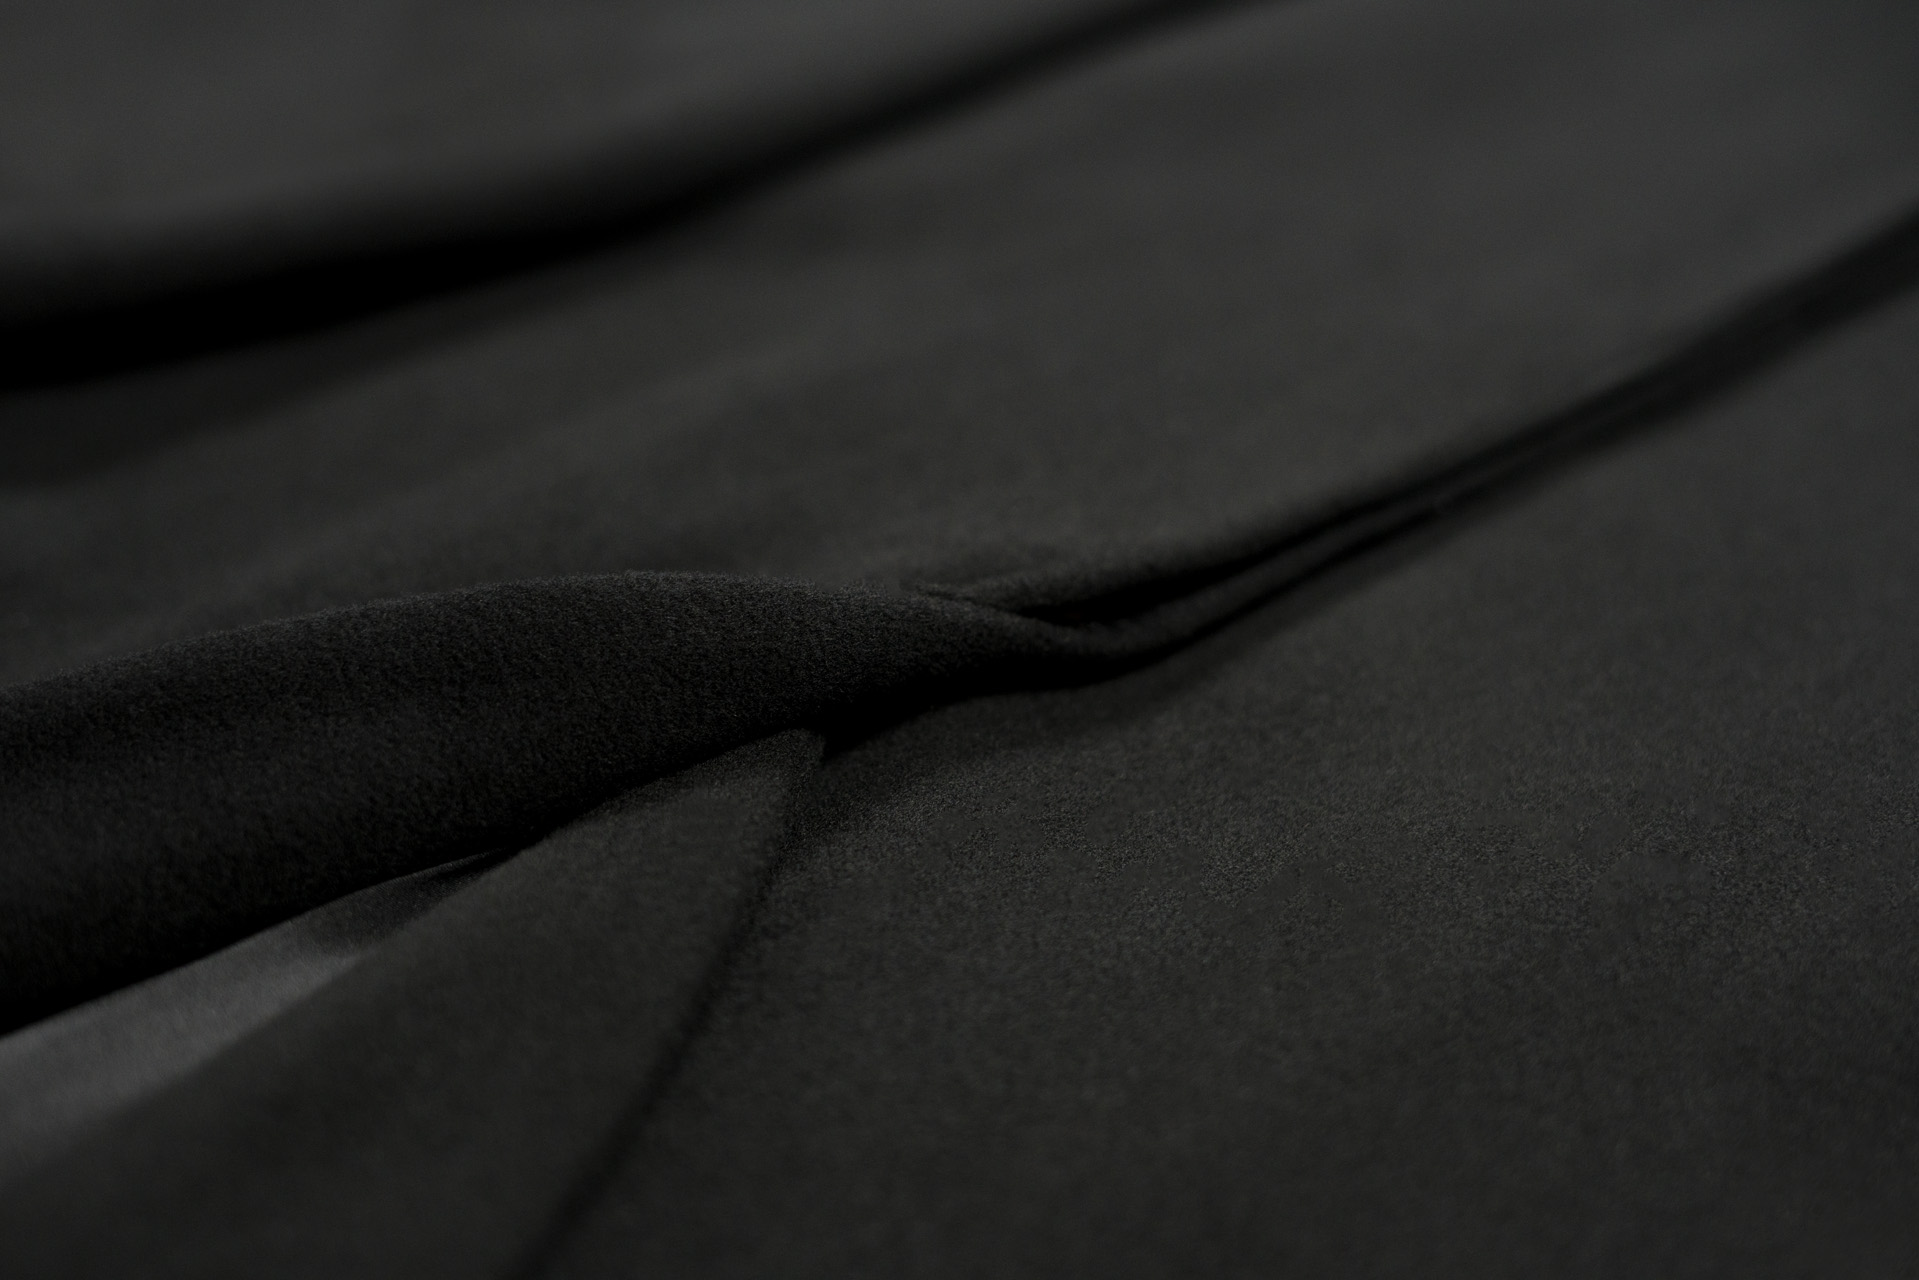 Cashmere Silk Closeup collar Detail Luxury Premium Quality